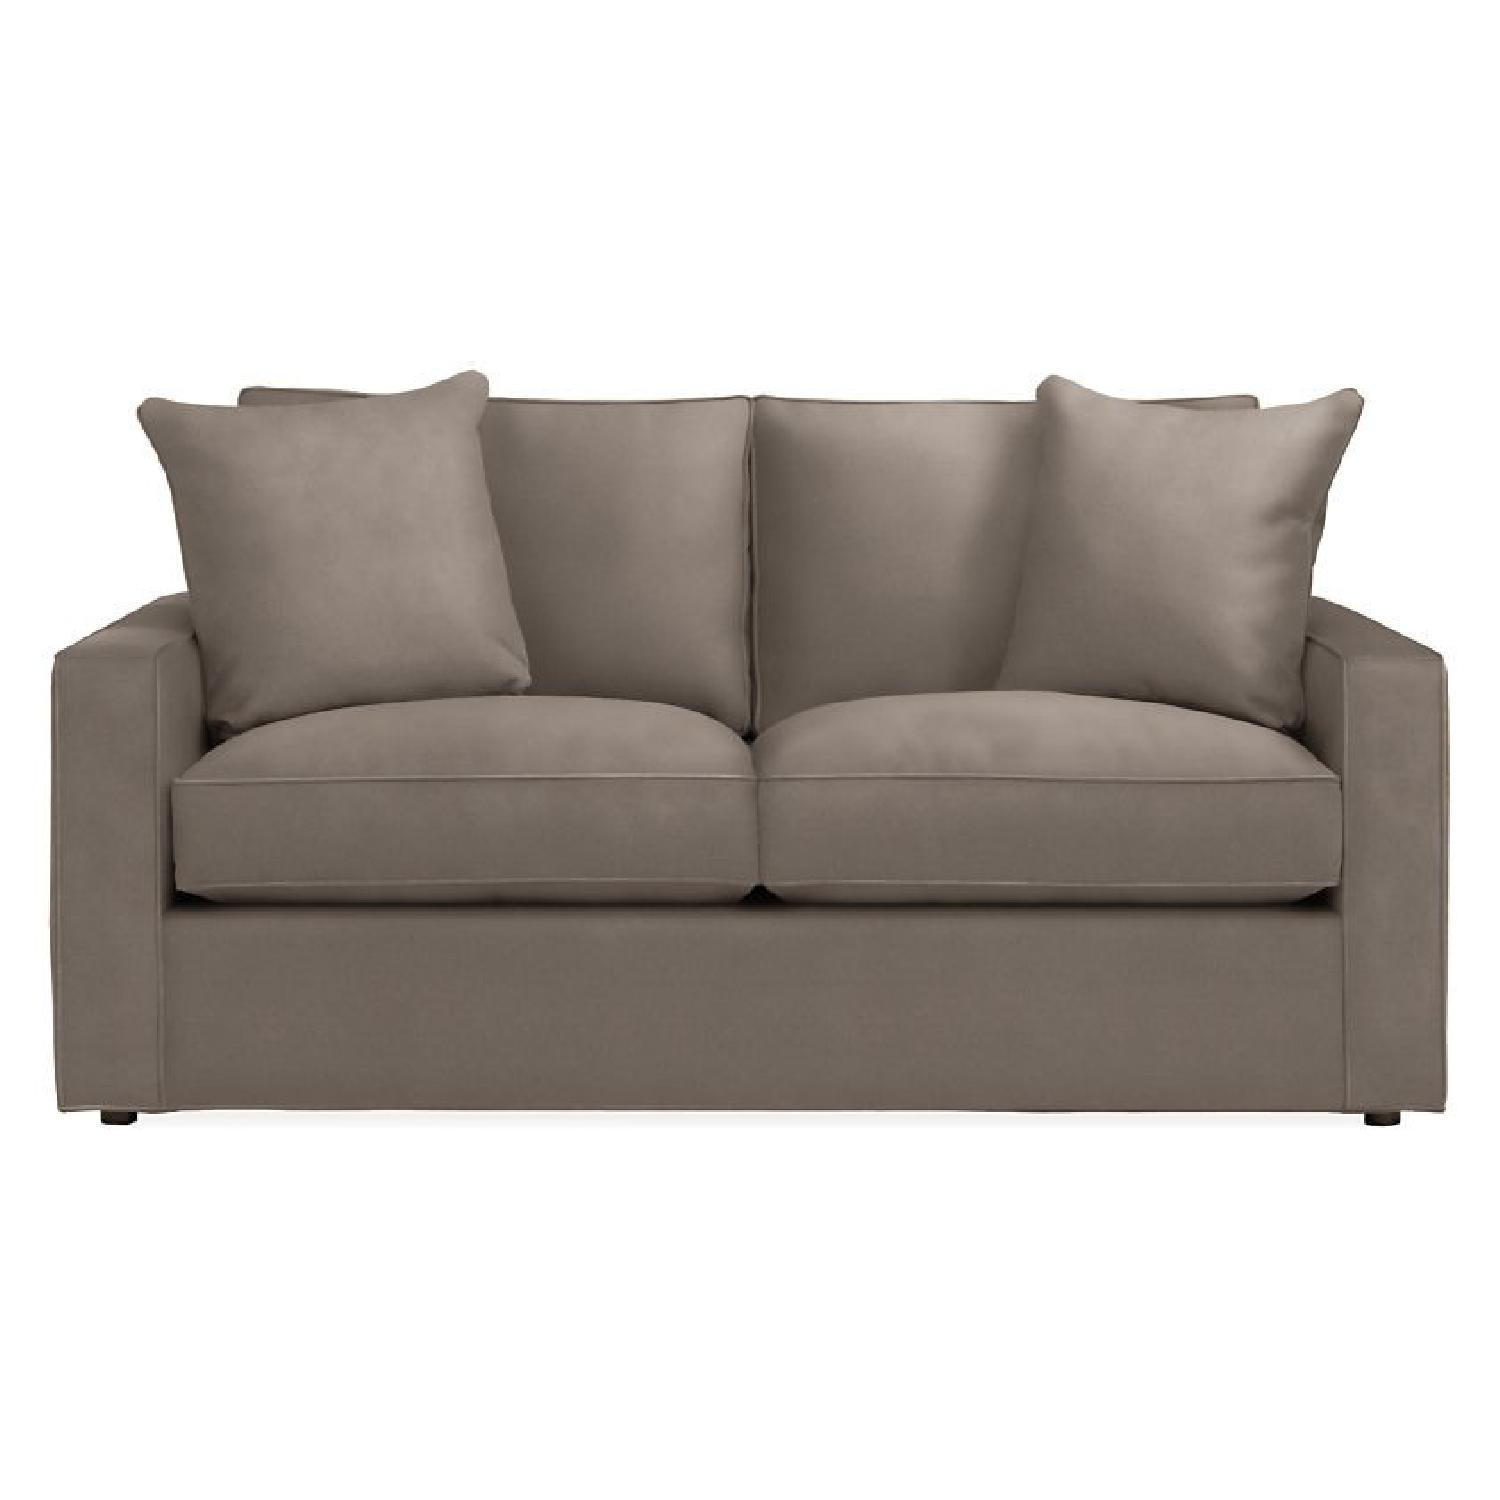 Room & Board Sleeper Pullout Sofa - image-0